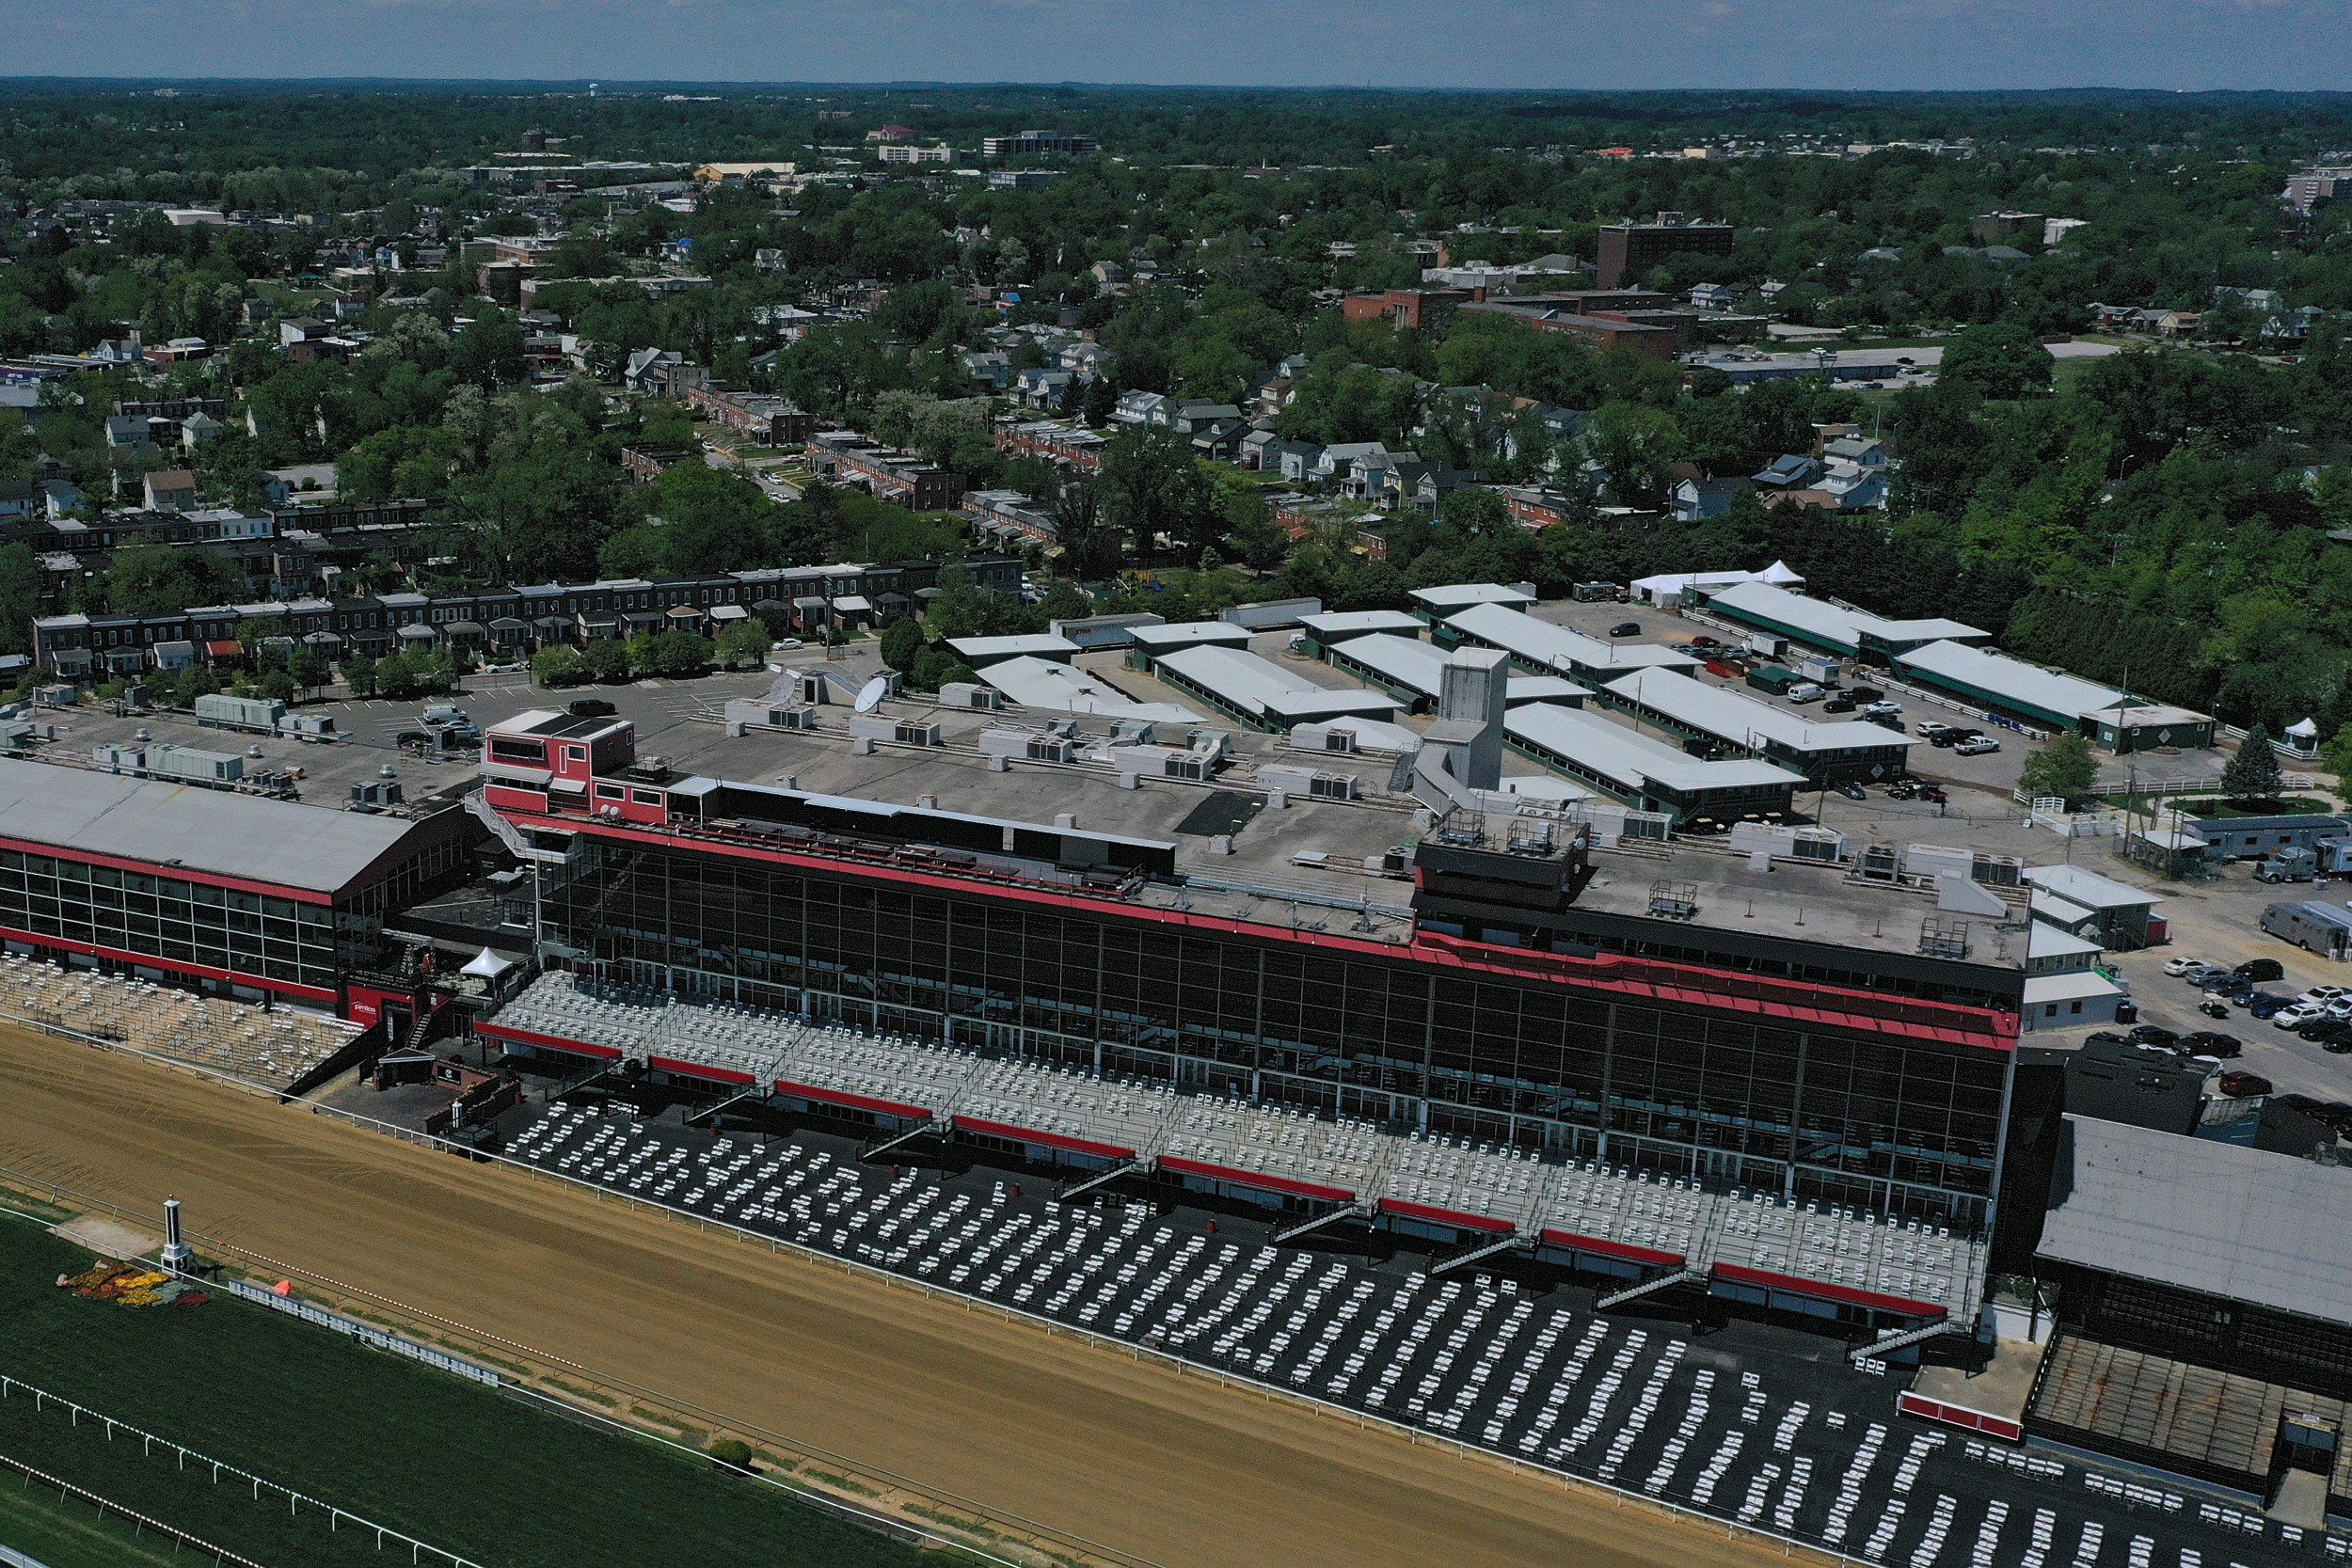 Latest Weather Forecast, Track Conditions Update for 2021 Preakness Stakes